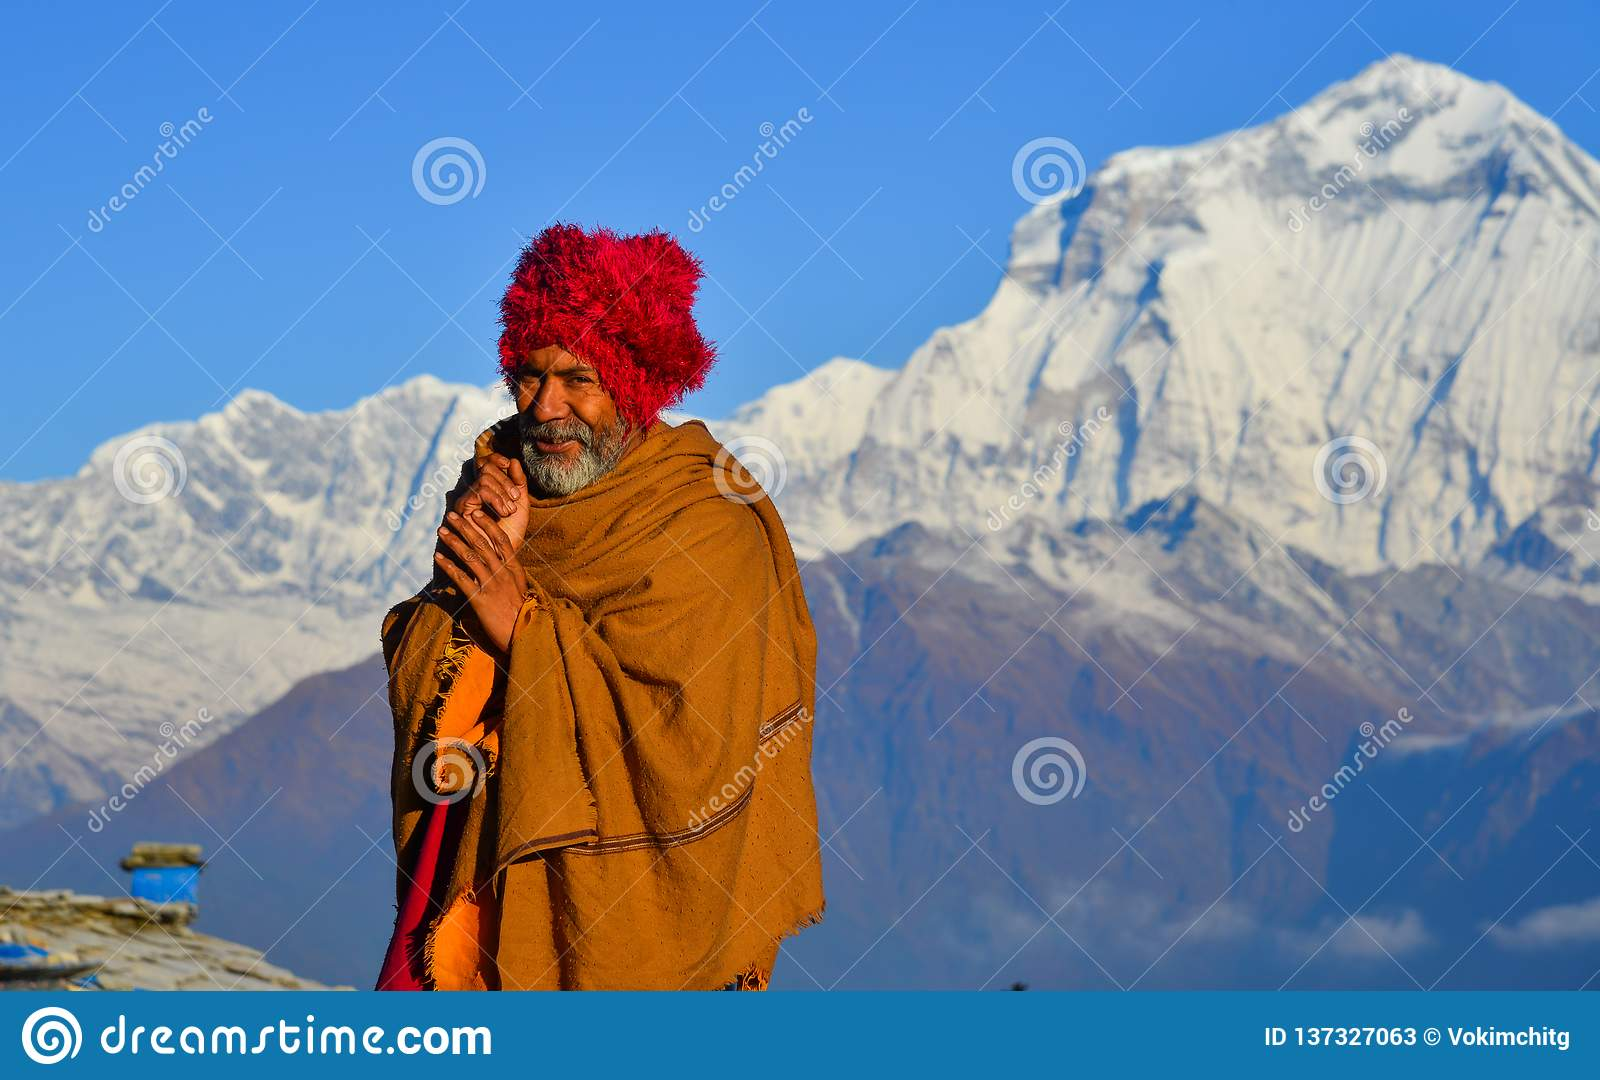 Local man on mountain in Khopra Village, Nepal